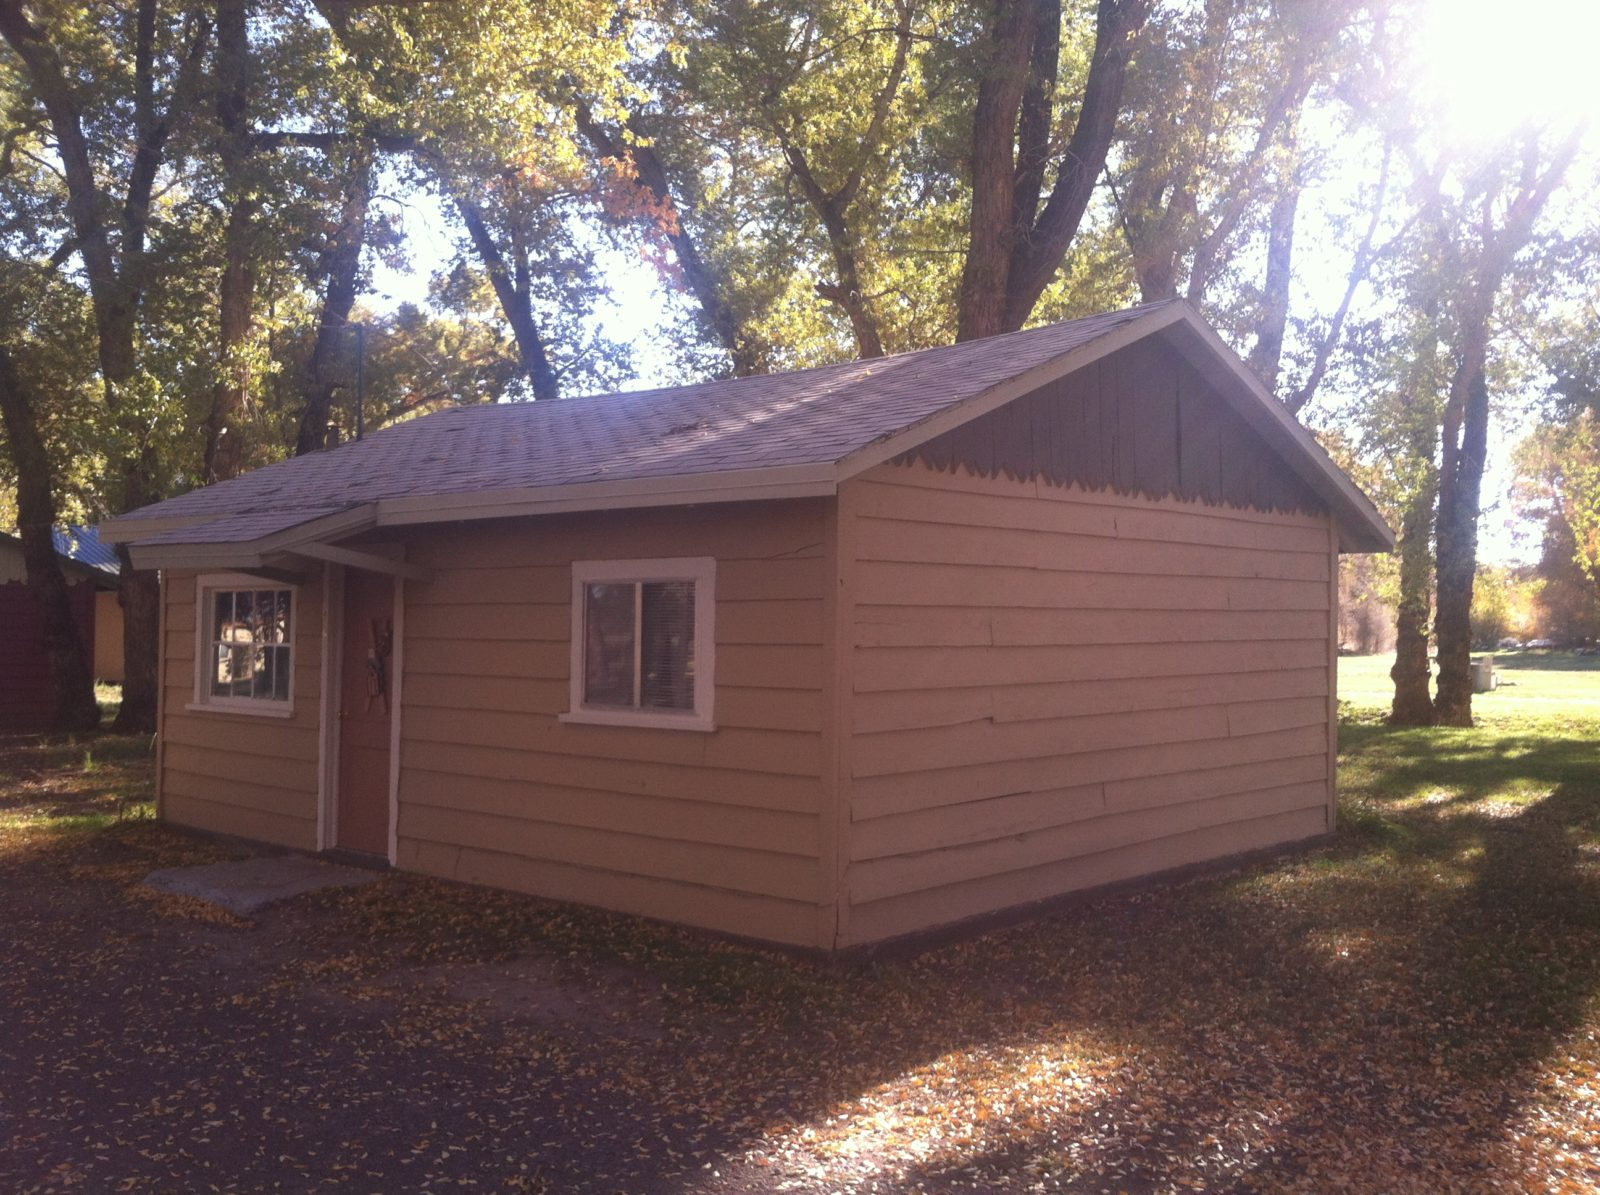 Cabin Four at at Twin Rivers Cabins and RV Park on the Conejos River in Antonito, Colorado.